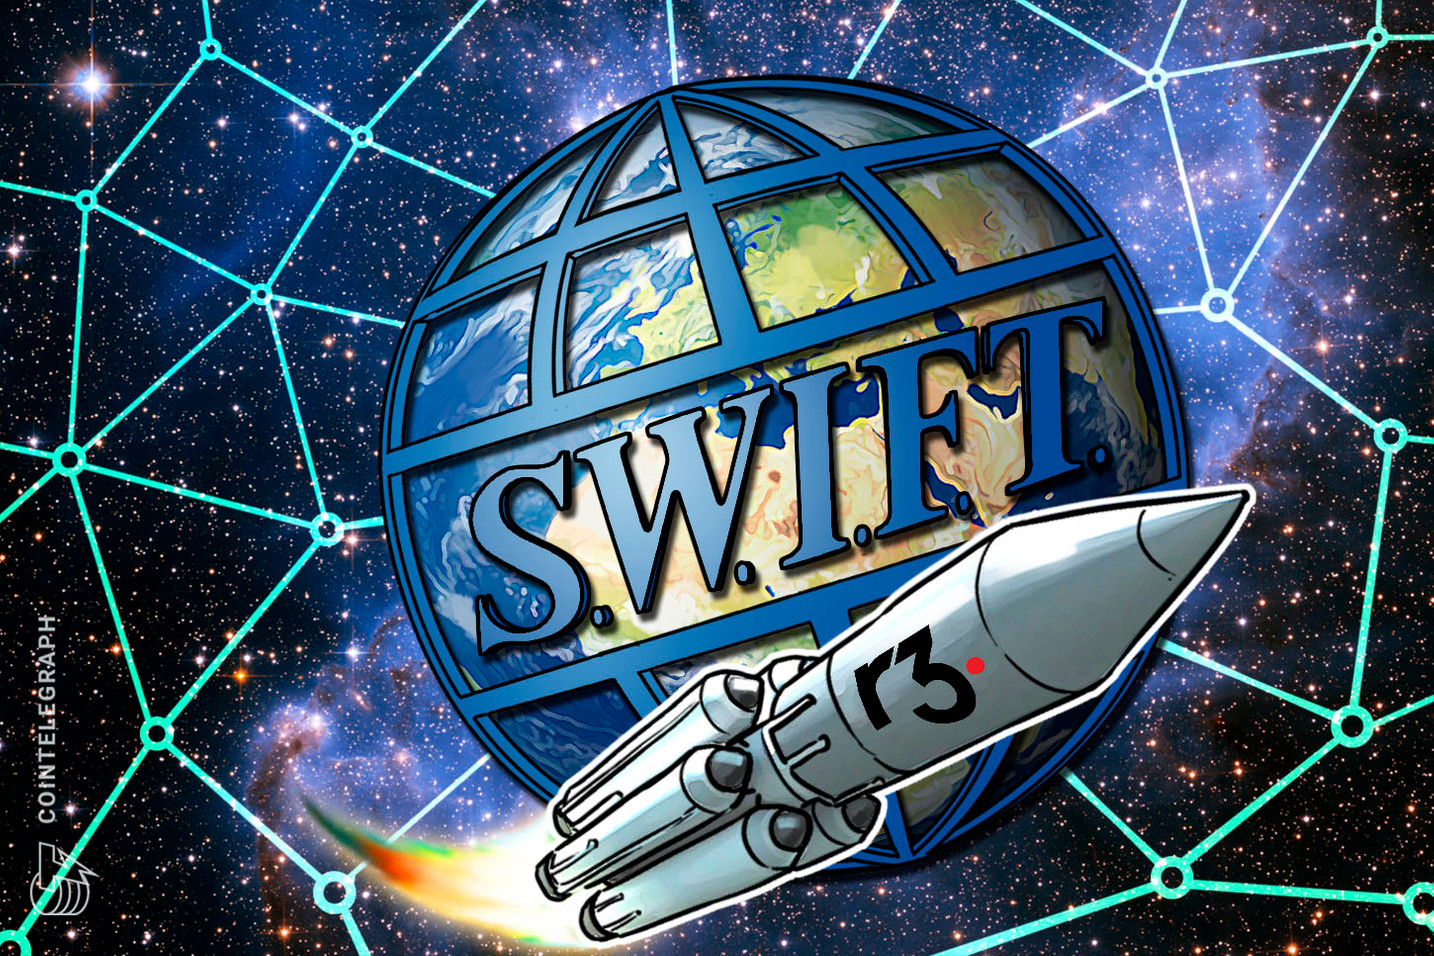 SWIFT CEO Reveals Plans to Launch PoC Gateway With Blockchain Consortium R3 Tech